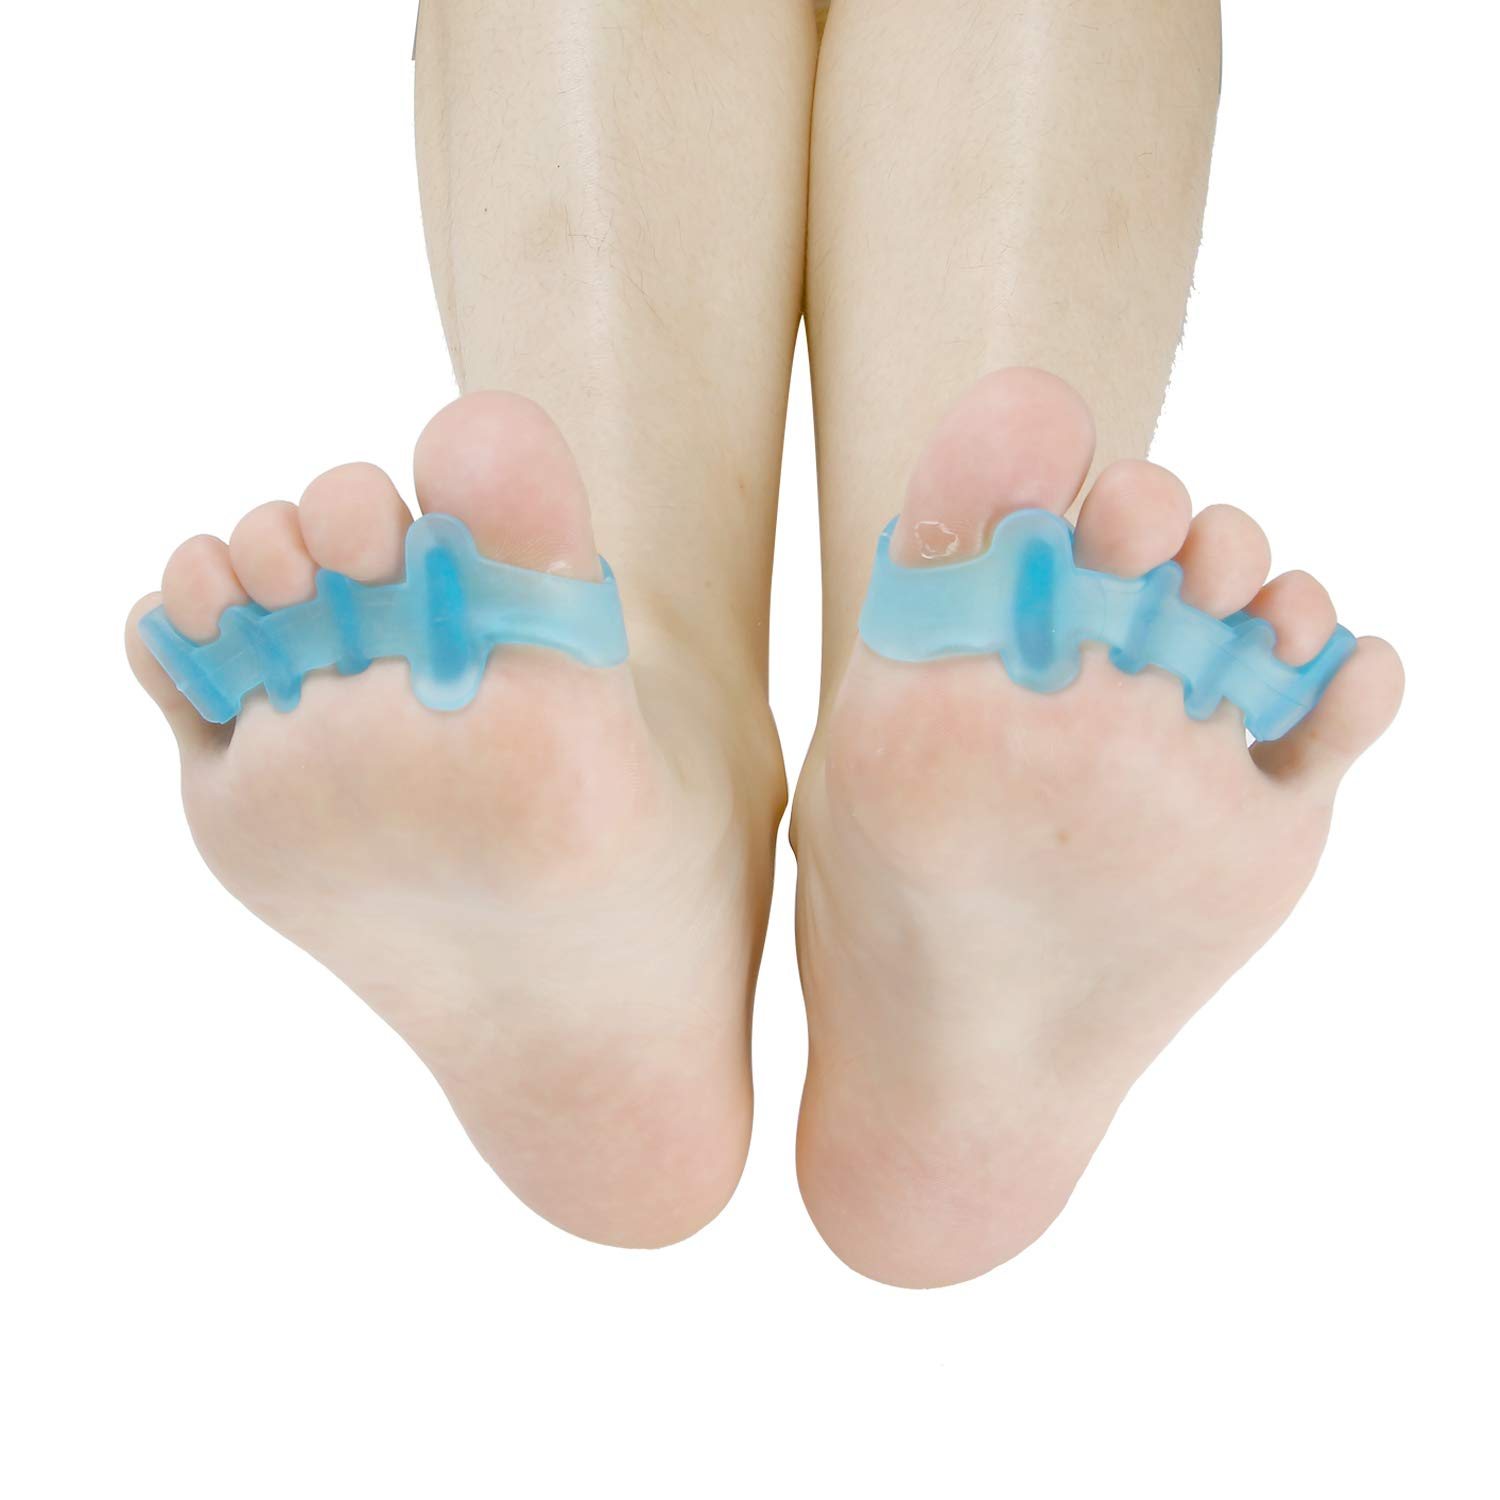 Toe Separators For Posture Correction, Bunions, Overlapping Toes, Hammer Toes, and Day to Day Use (blue) by Forever Thriving